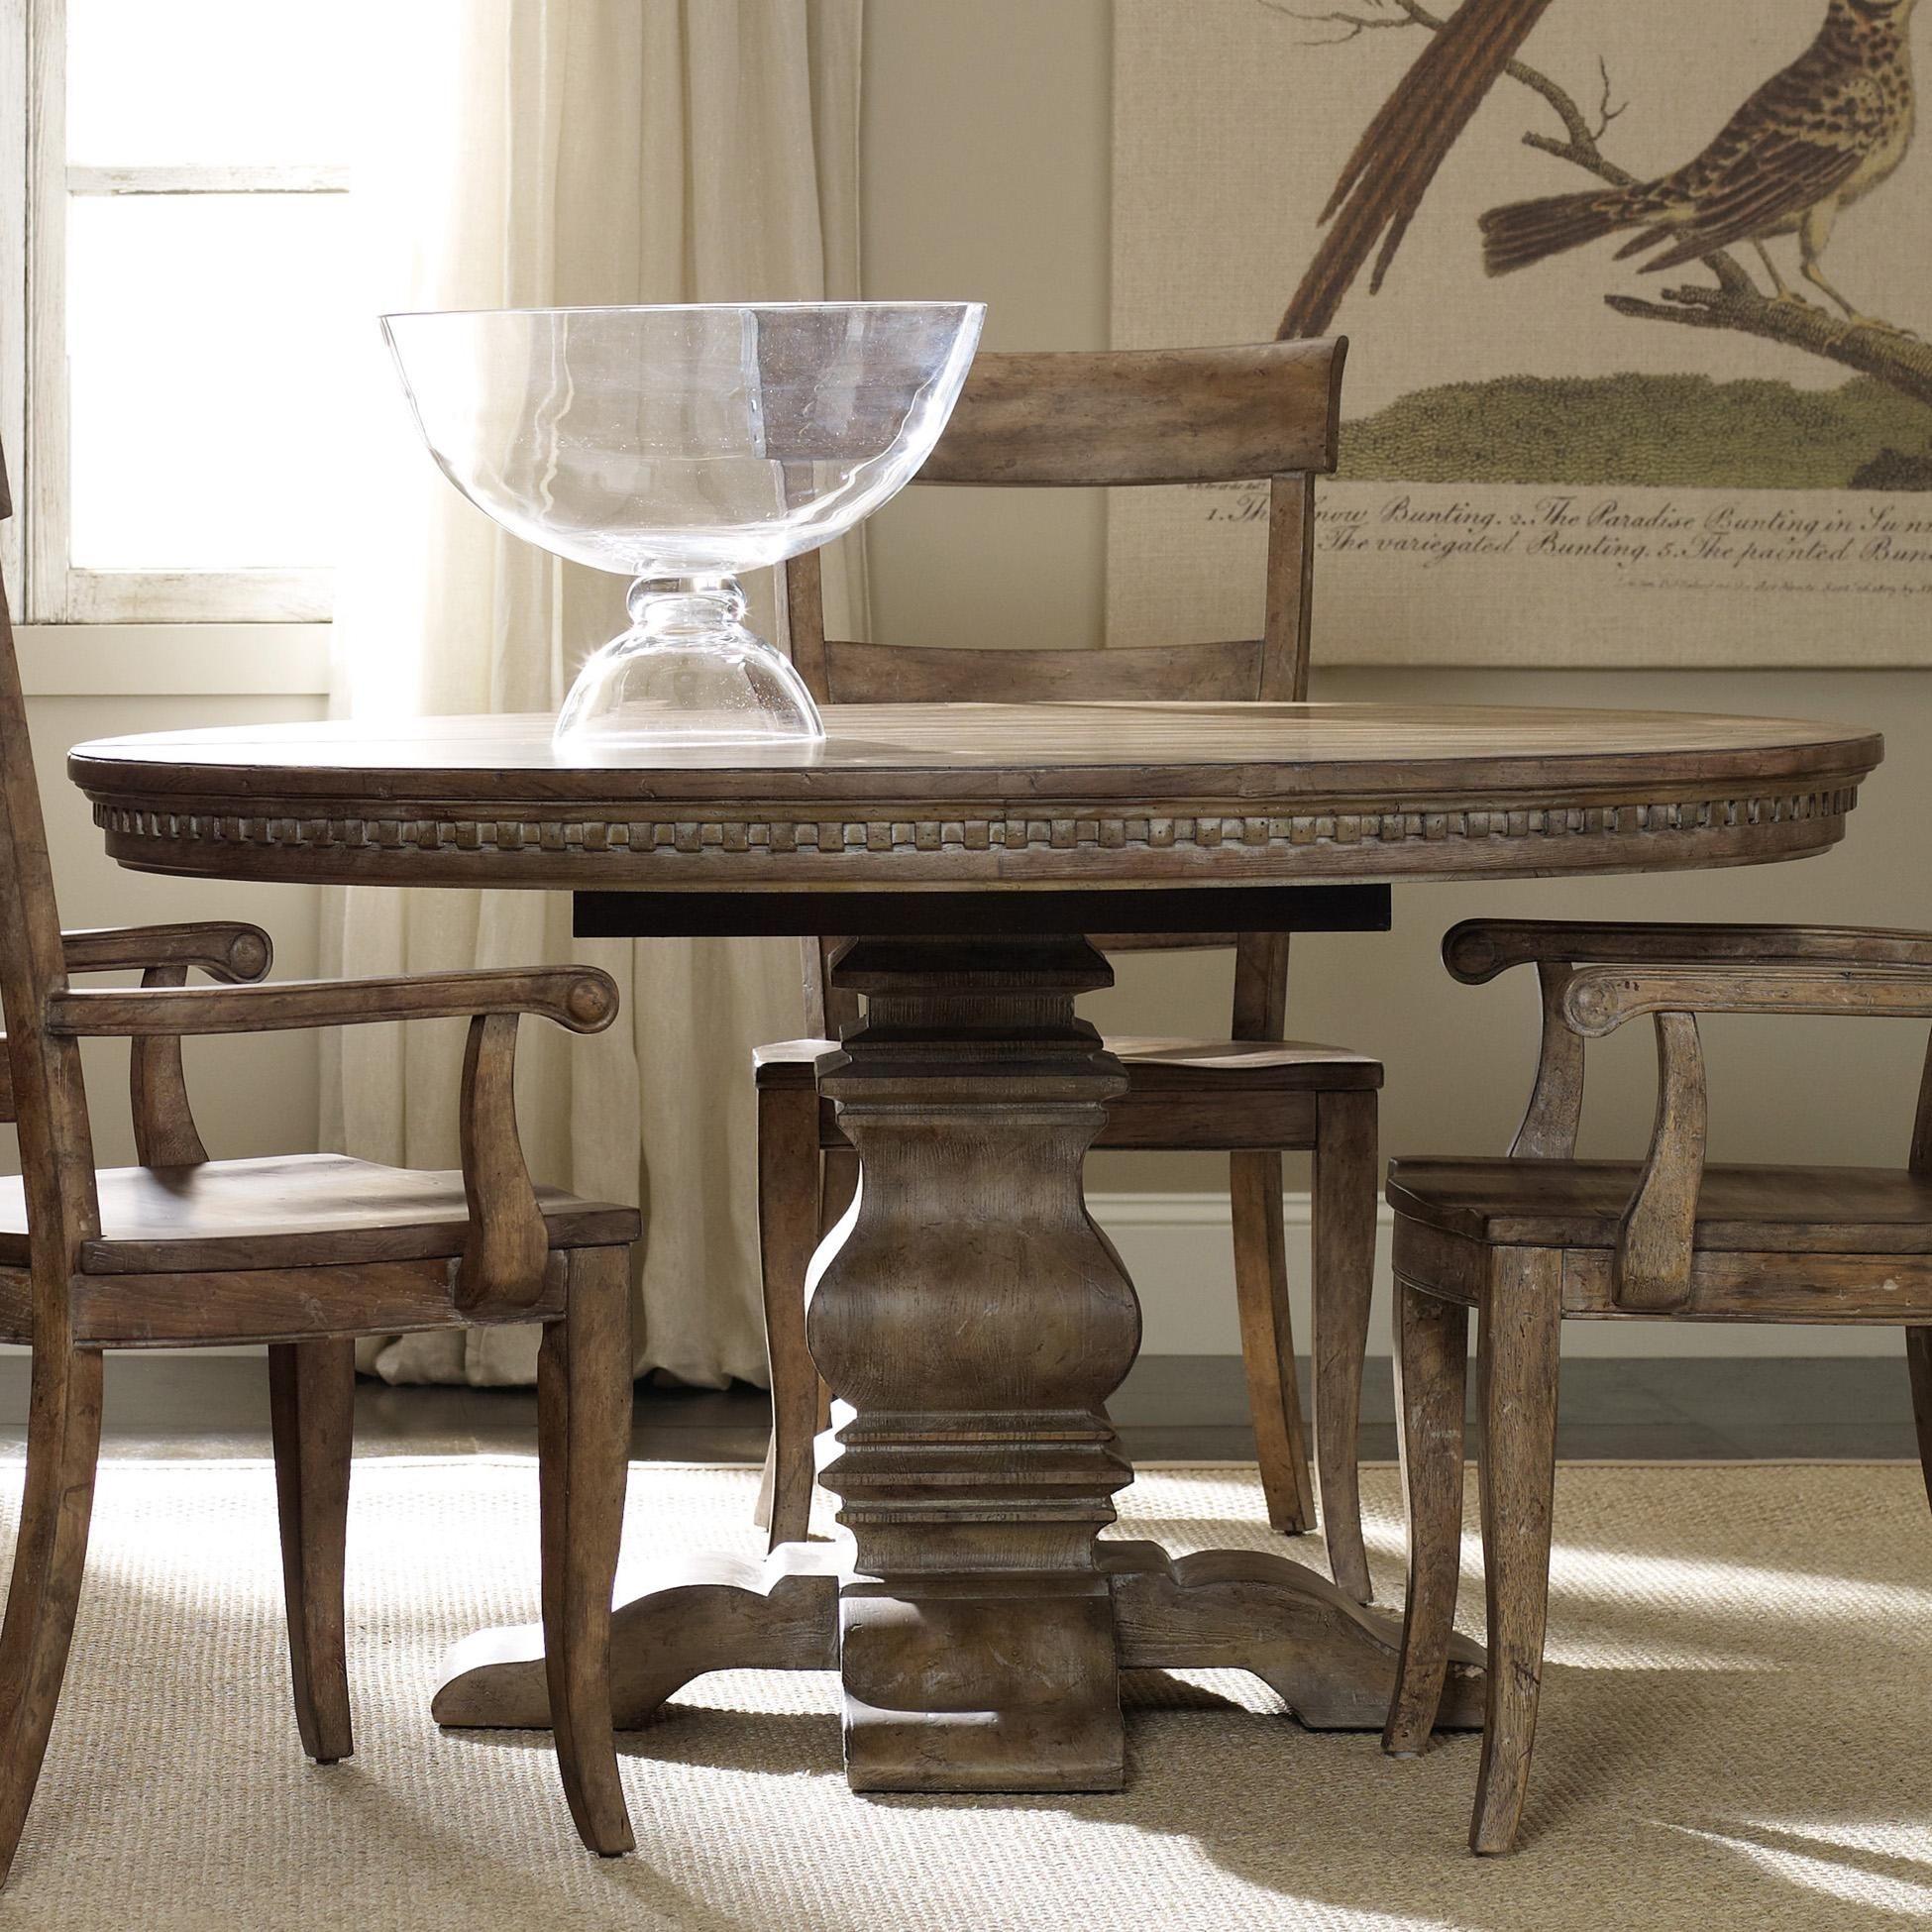 Sorella Round Dining Table With Pedestal Base And 20 Extension Leaf By  Hooker Furniture   Hudsons Furniture   Kitchen Table Tampa, St Petersburg,  Orlando, ...